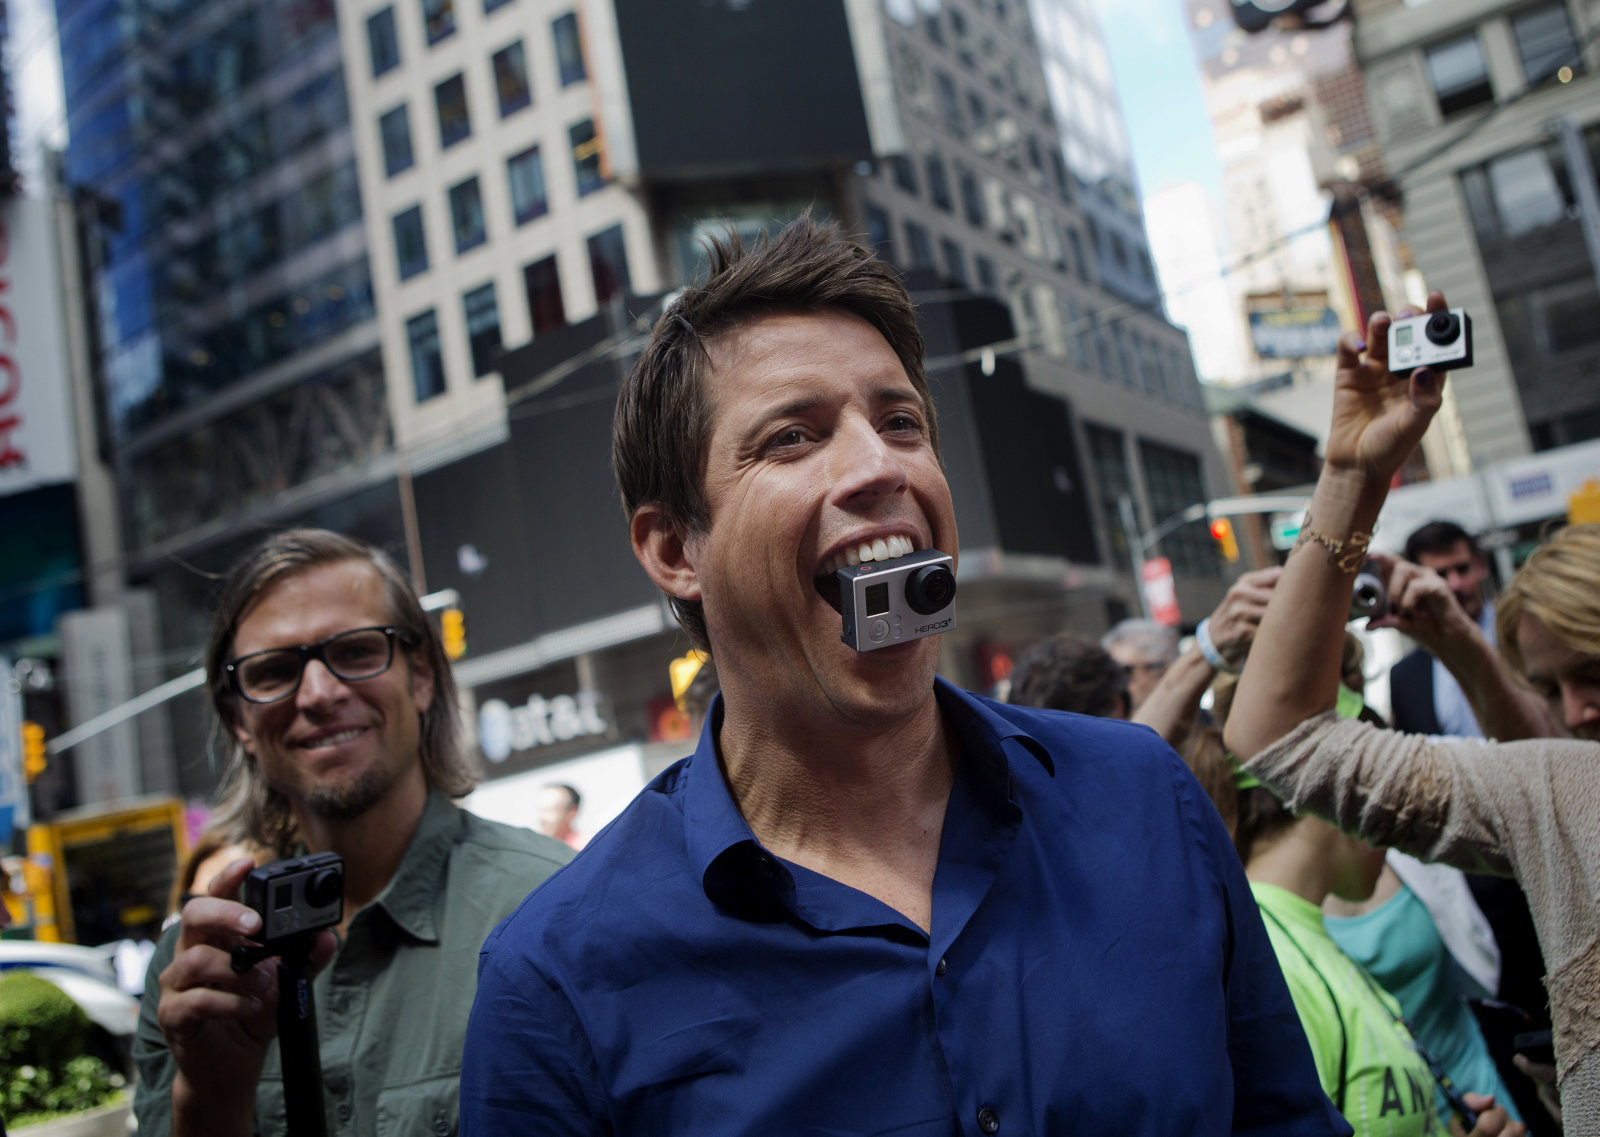 Bloomberg's Best Photos 2014: Nick Woodman, founder and chief executive officer of GoPro Inc., stands for a photograph with a GoPro Hero 3+ camera in his mouth after ringing the opening bell for the release of the company's IPO at the Nasdaq MarketSite in New York, U.S., on Thursday, June 26, 2014. GoPro Inc., whose cameras let surfers, skiers and sky divers record their exploits, rose in its trading debut after pricing its initial public offering at the top of the marketed range. Photographer: Victor J. Blue/Bloomberg via Getty Images